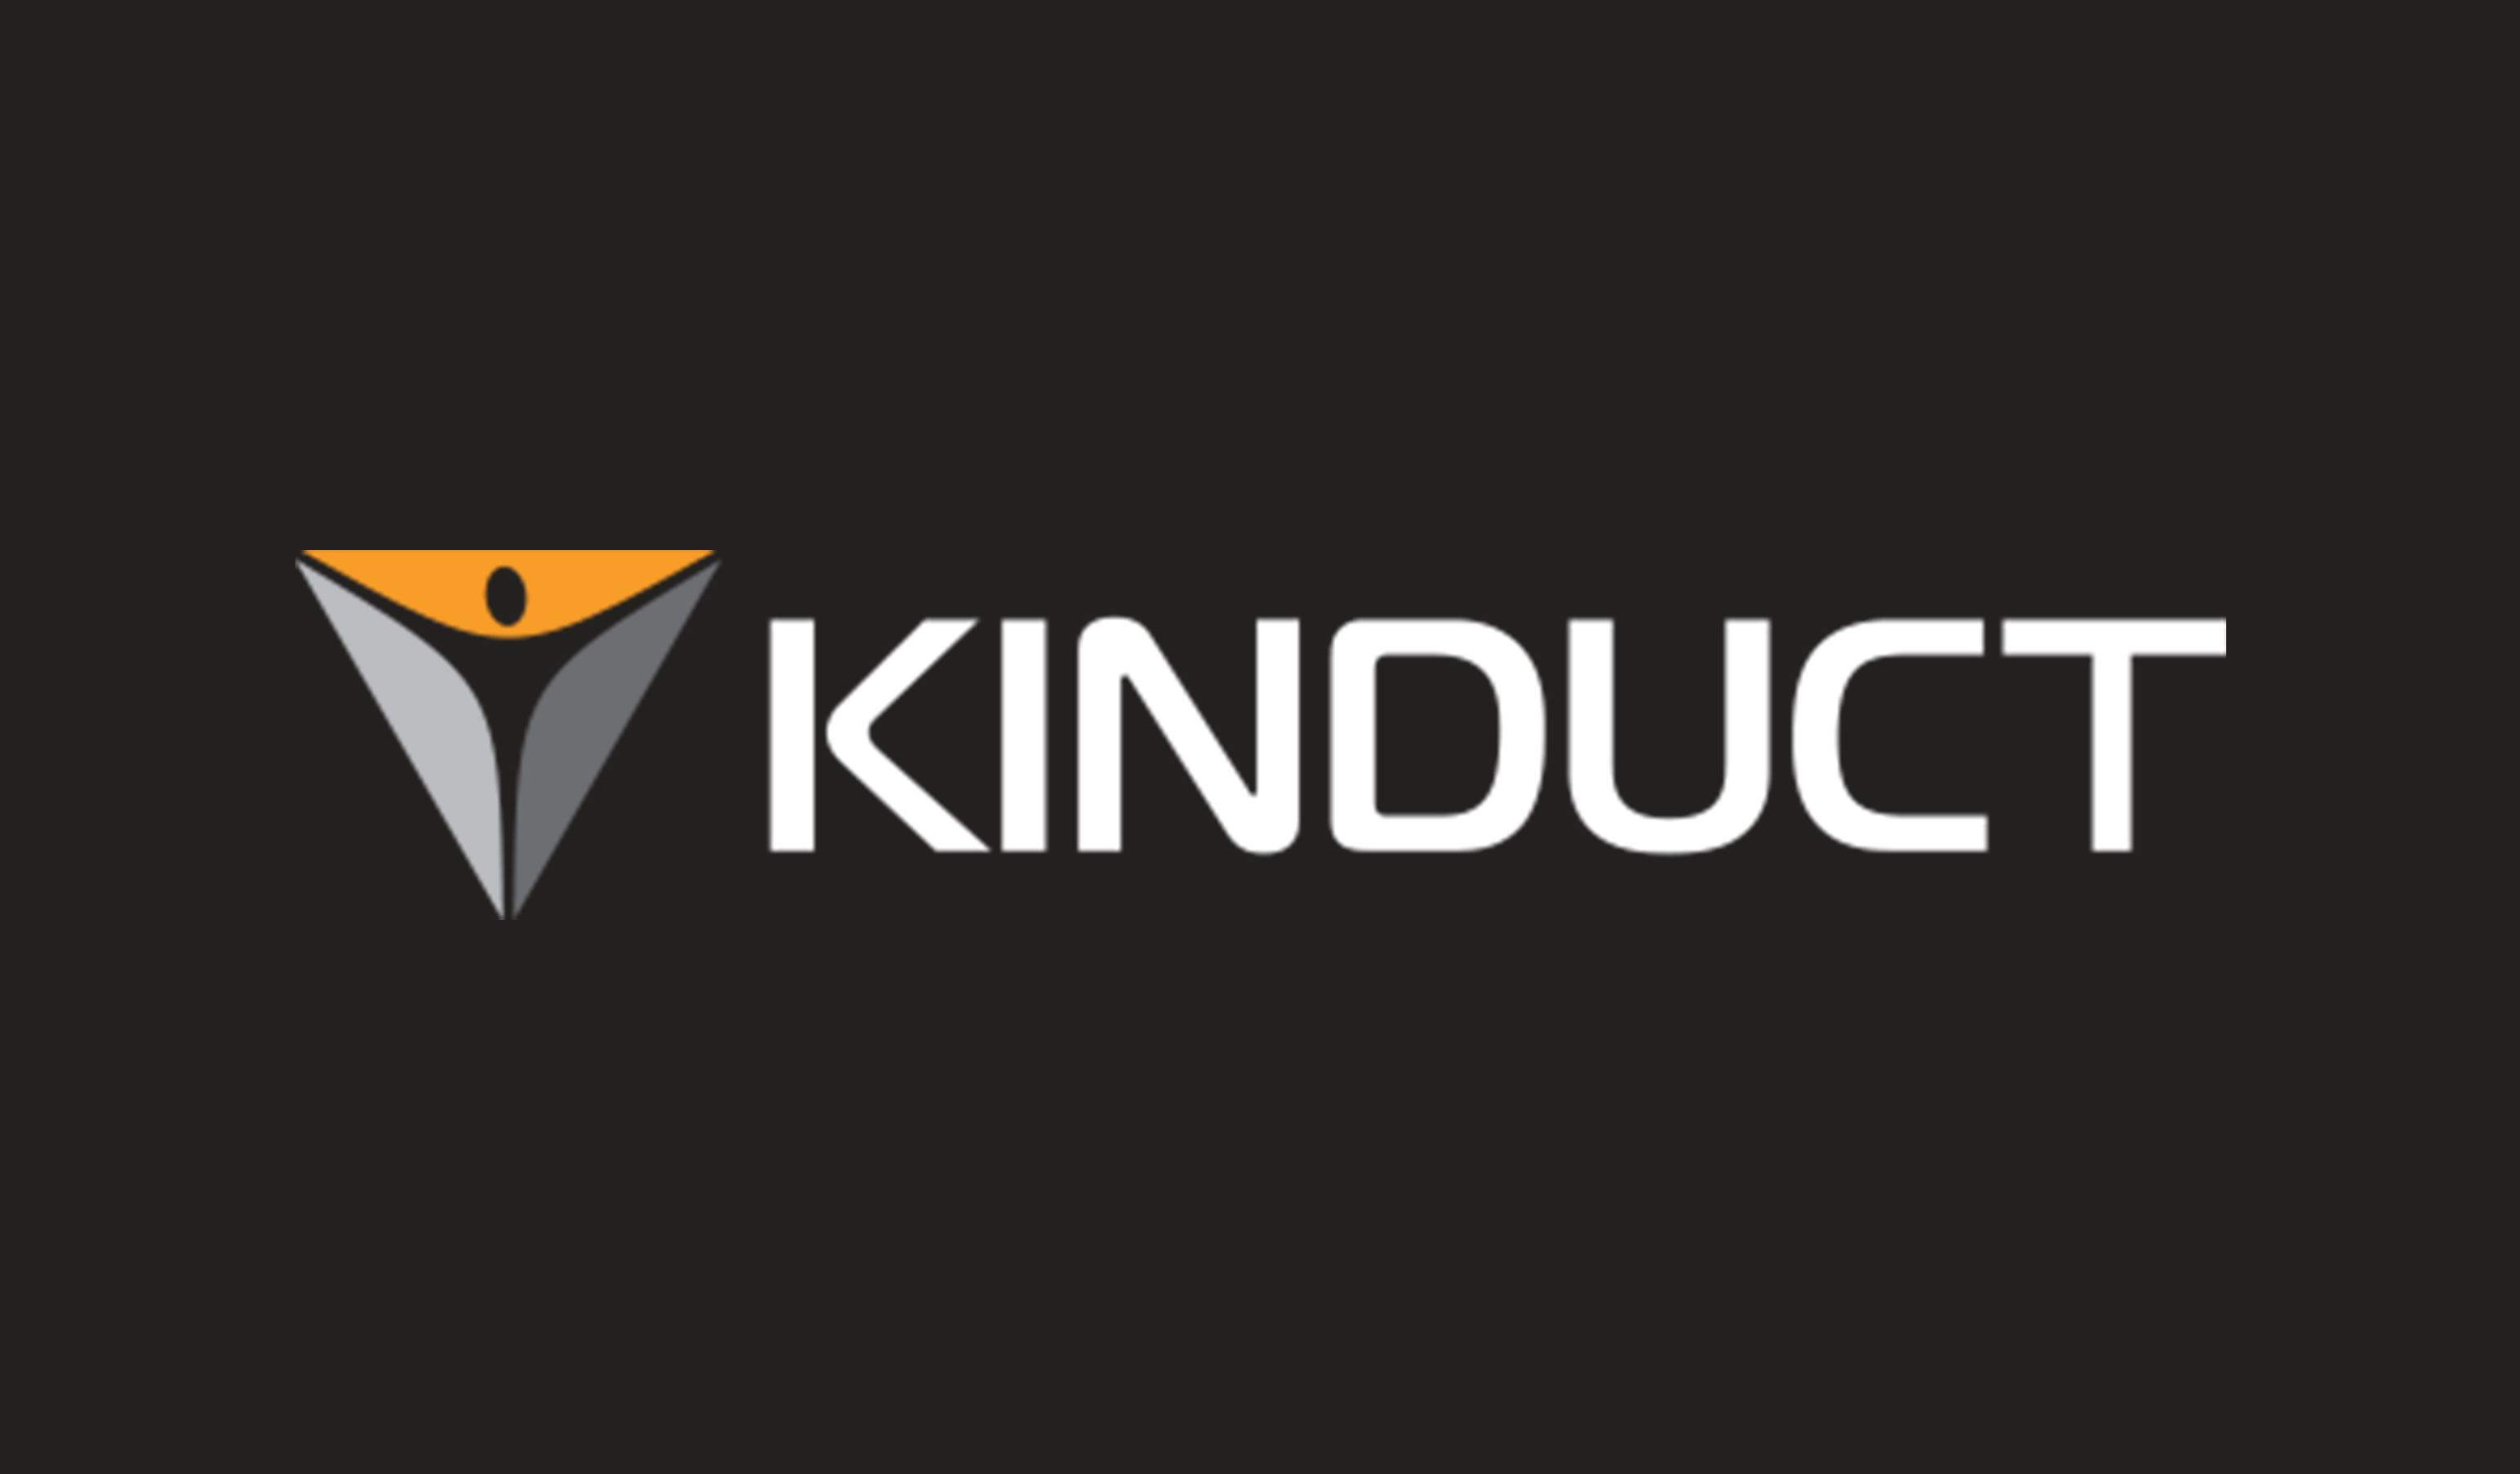 Kinduct technologies